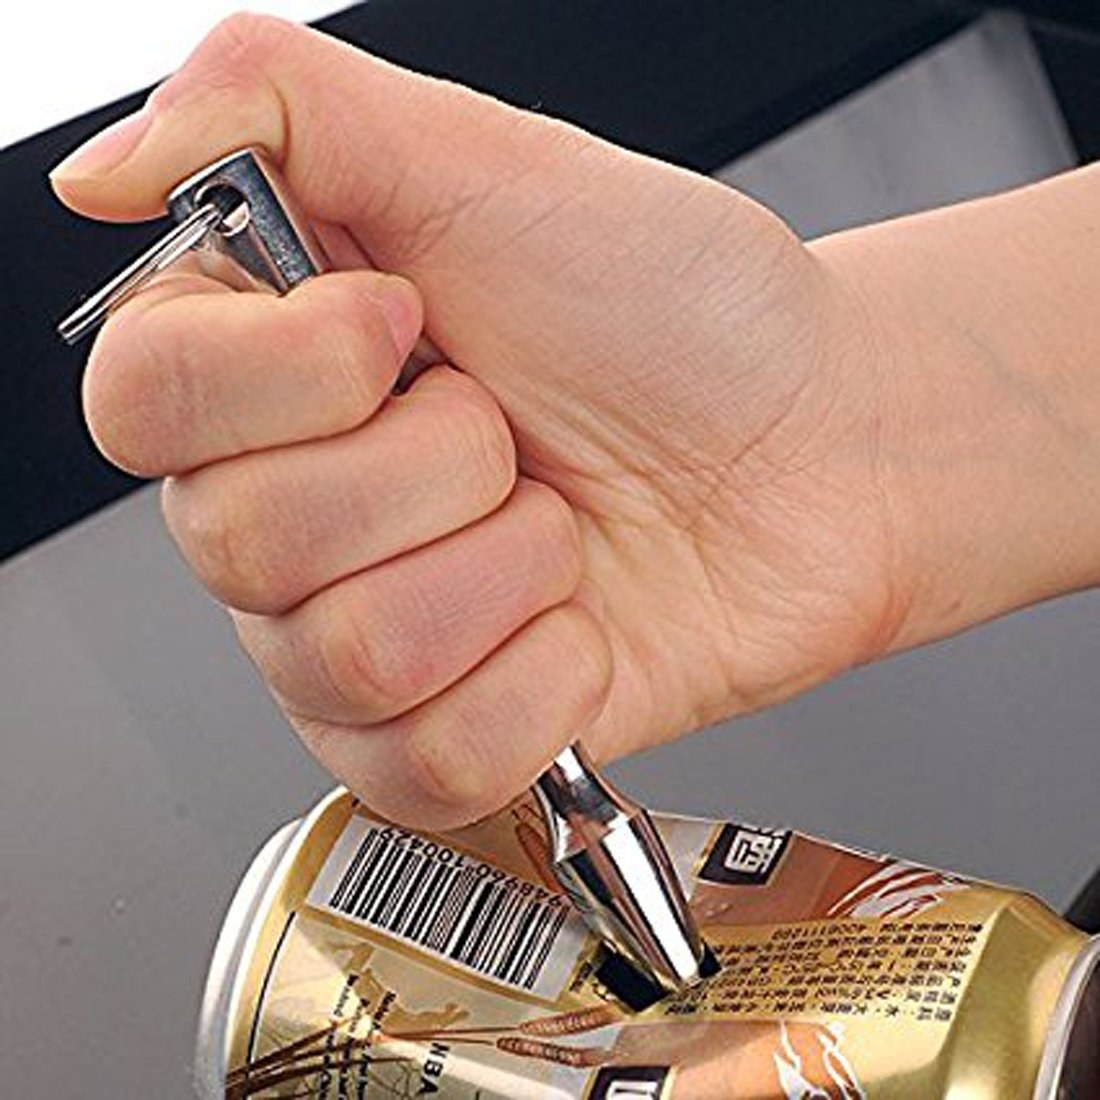 13 Self Defense Items To Protect Yourself